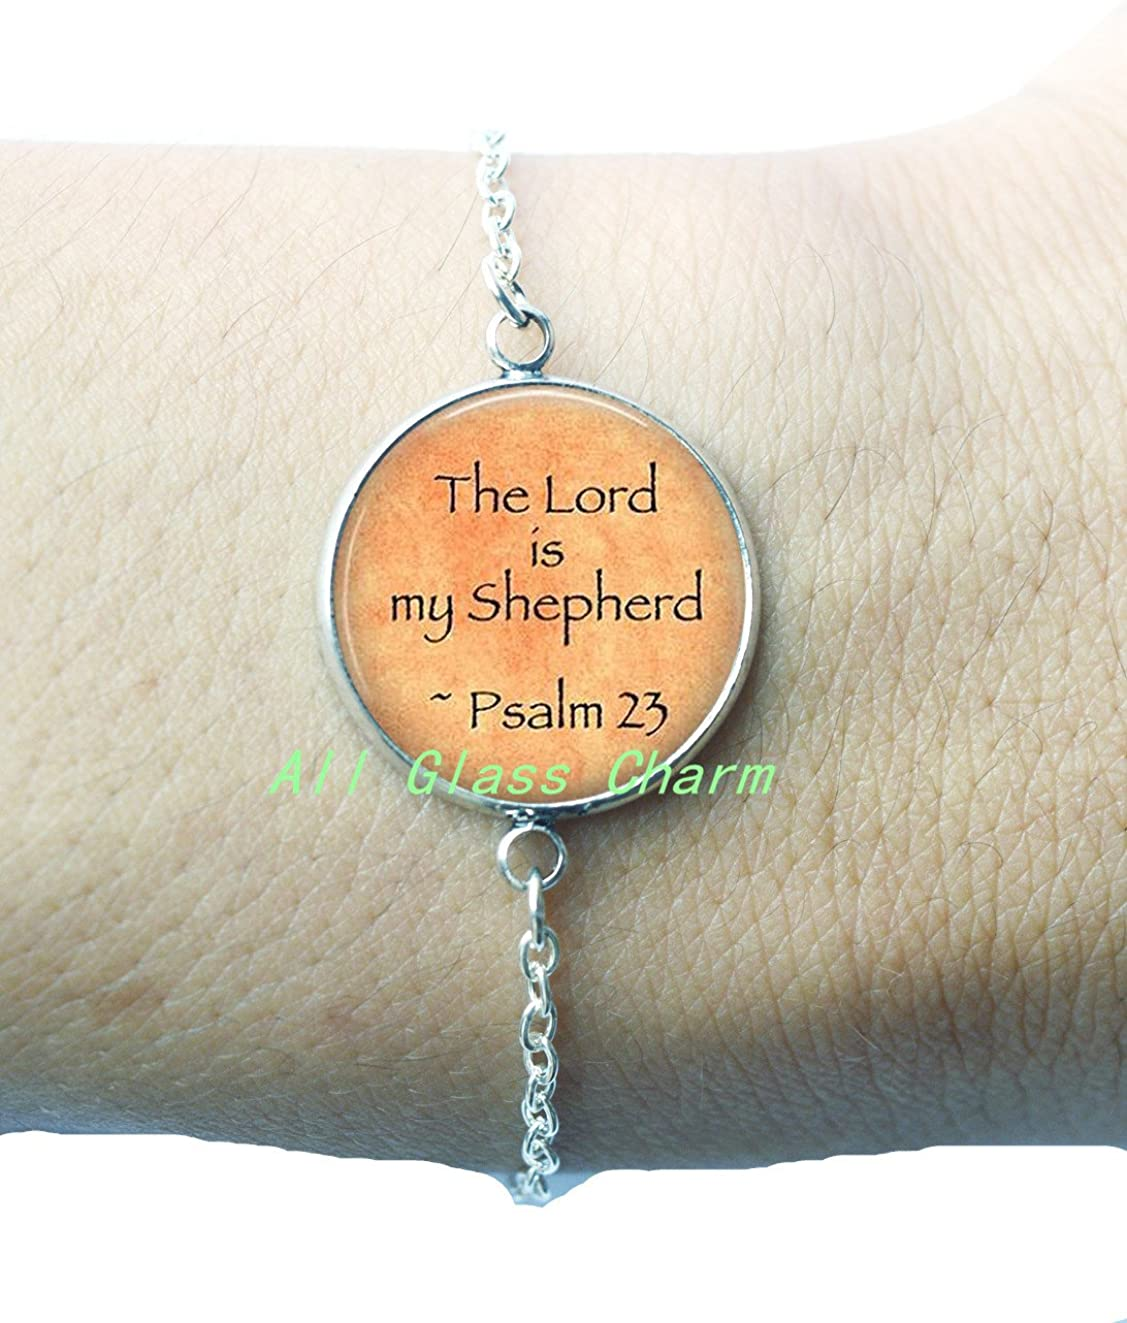 Comfort and Hope Bracelet,AS0212 Bible Quote Jewelry Psalm 23 Bracelet The Lord is my Shepherd Beautiful Bracelet,Scripture Bracelets Bible Verse Bracelet